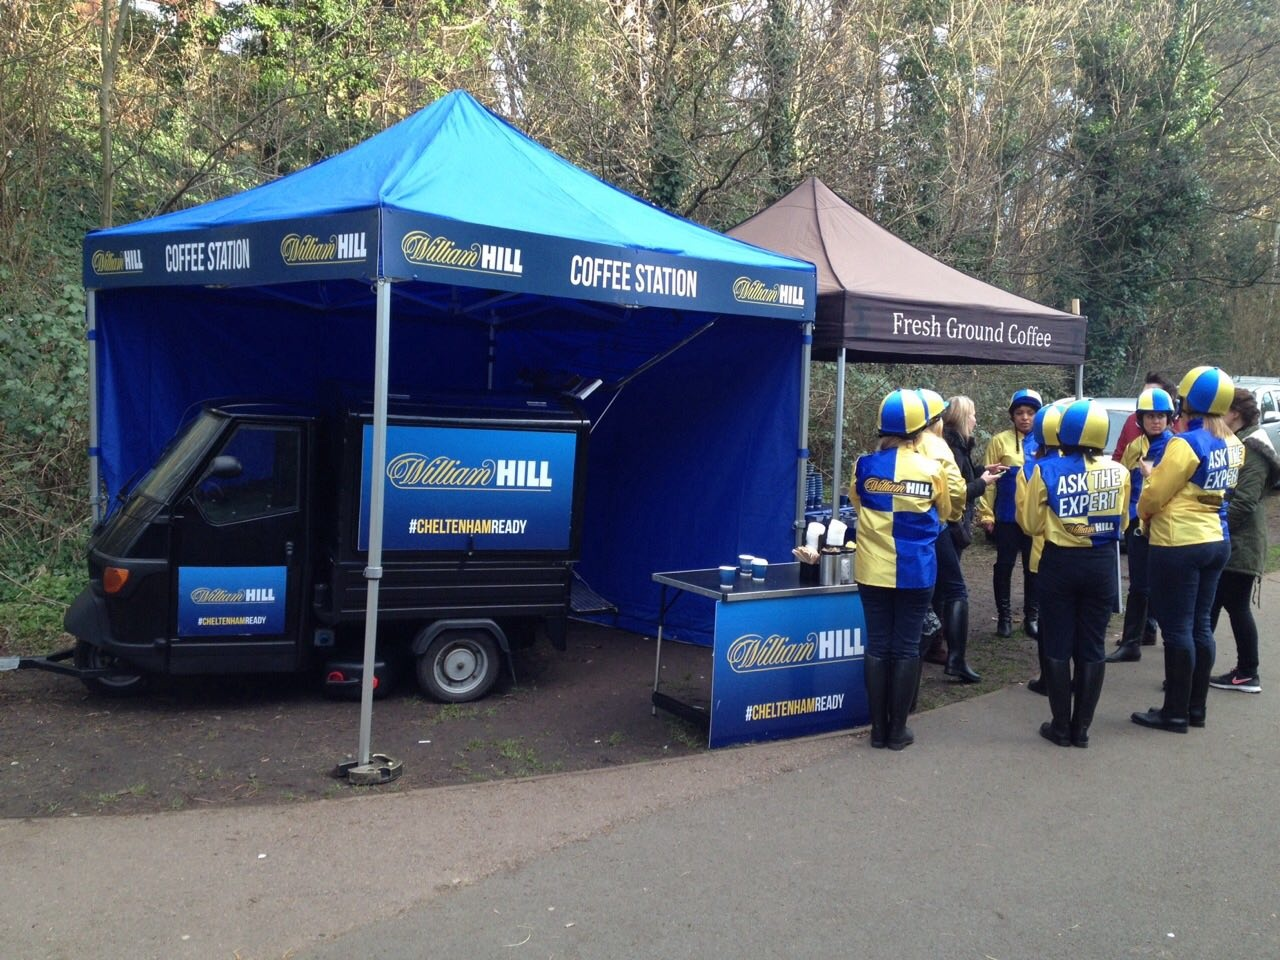 Photos of mobile coffee van, cart and bar hire - William Hill corporate branded mobile coffee van hire by The Mobile Coffee Bean